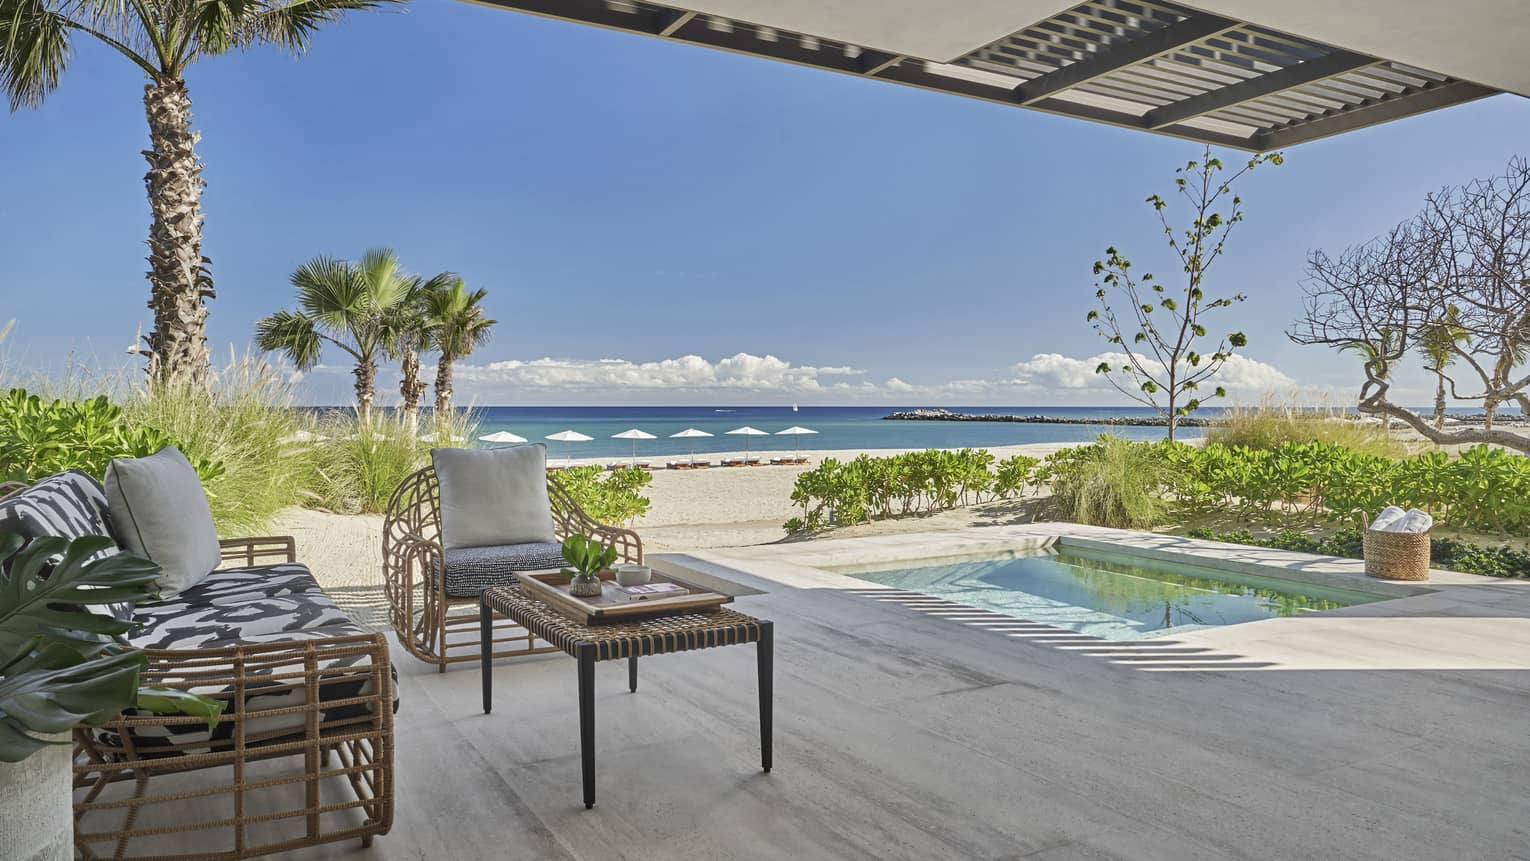 Outdoor terrace with beach and ocean view, small pool, two arm chairs and table